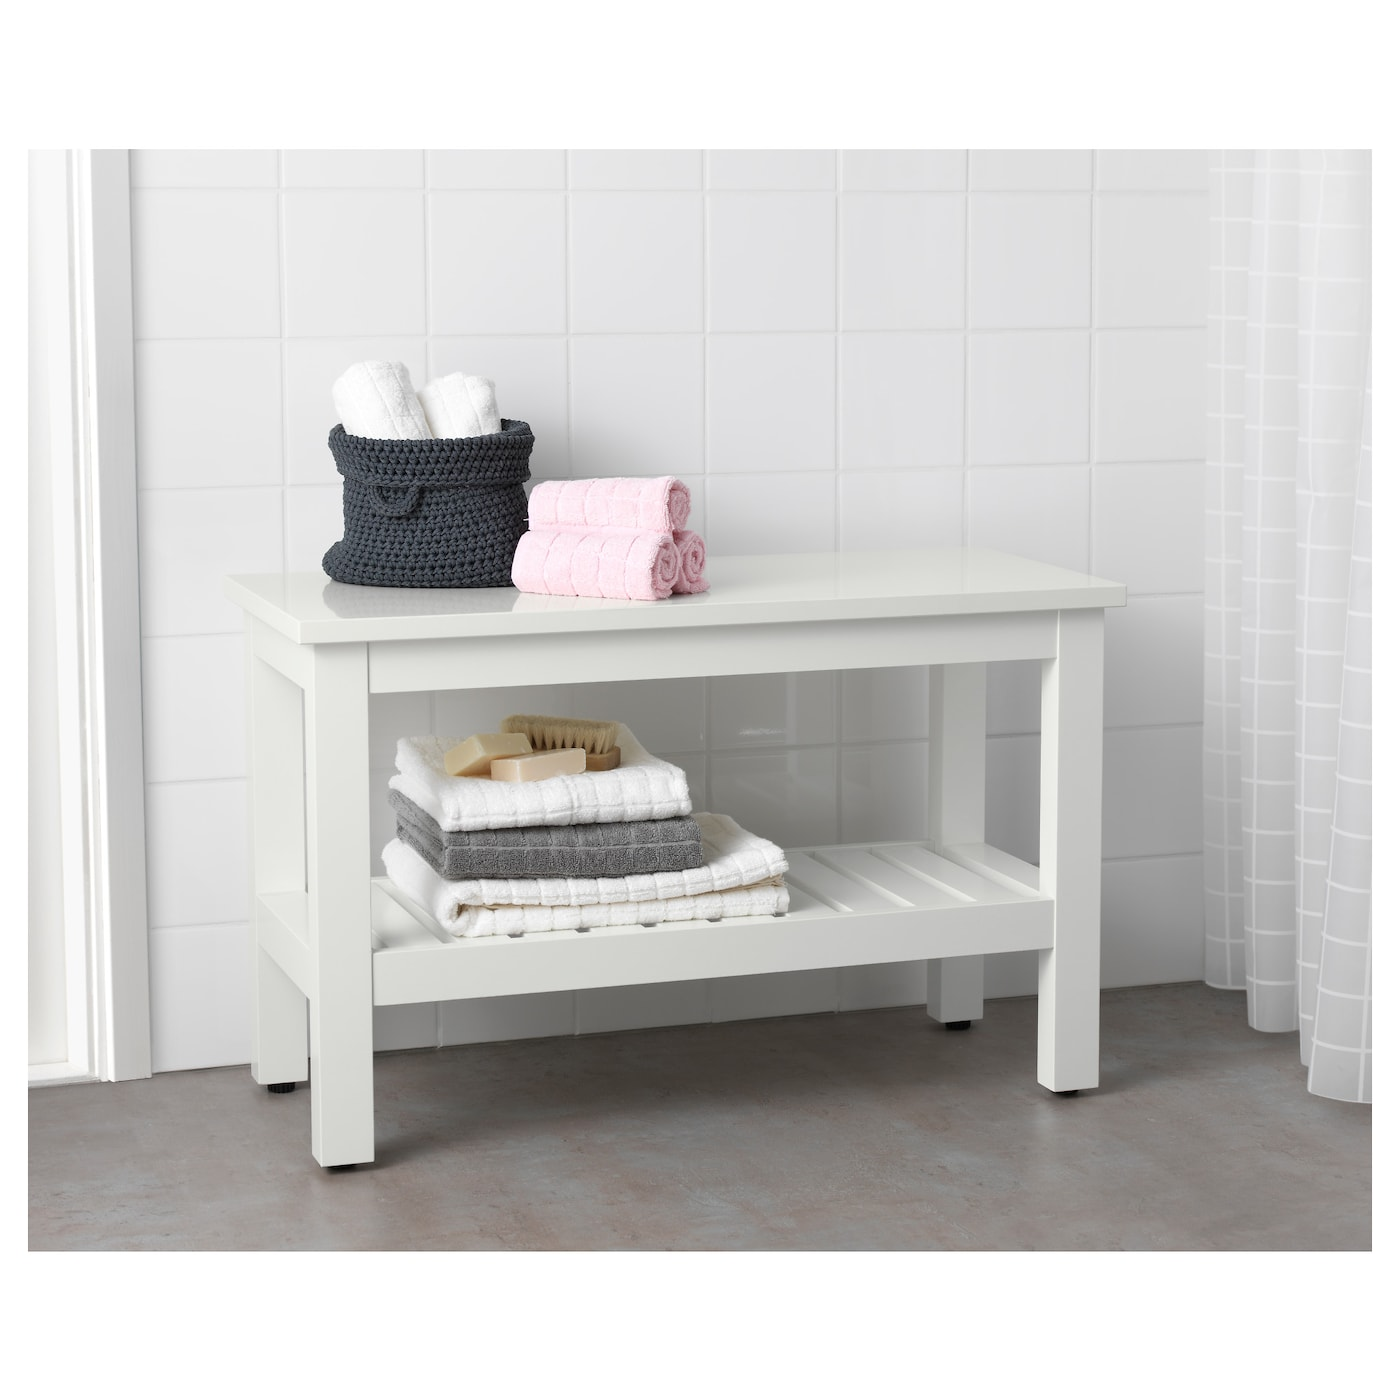 hemnes bench white 83 cm ikea. Black Bedroom Furniture Sets. Home Design Ideas